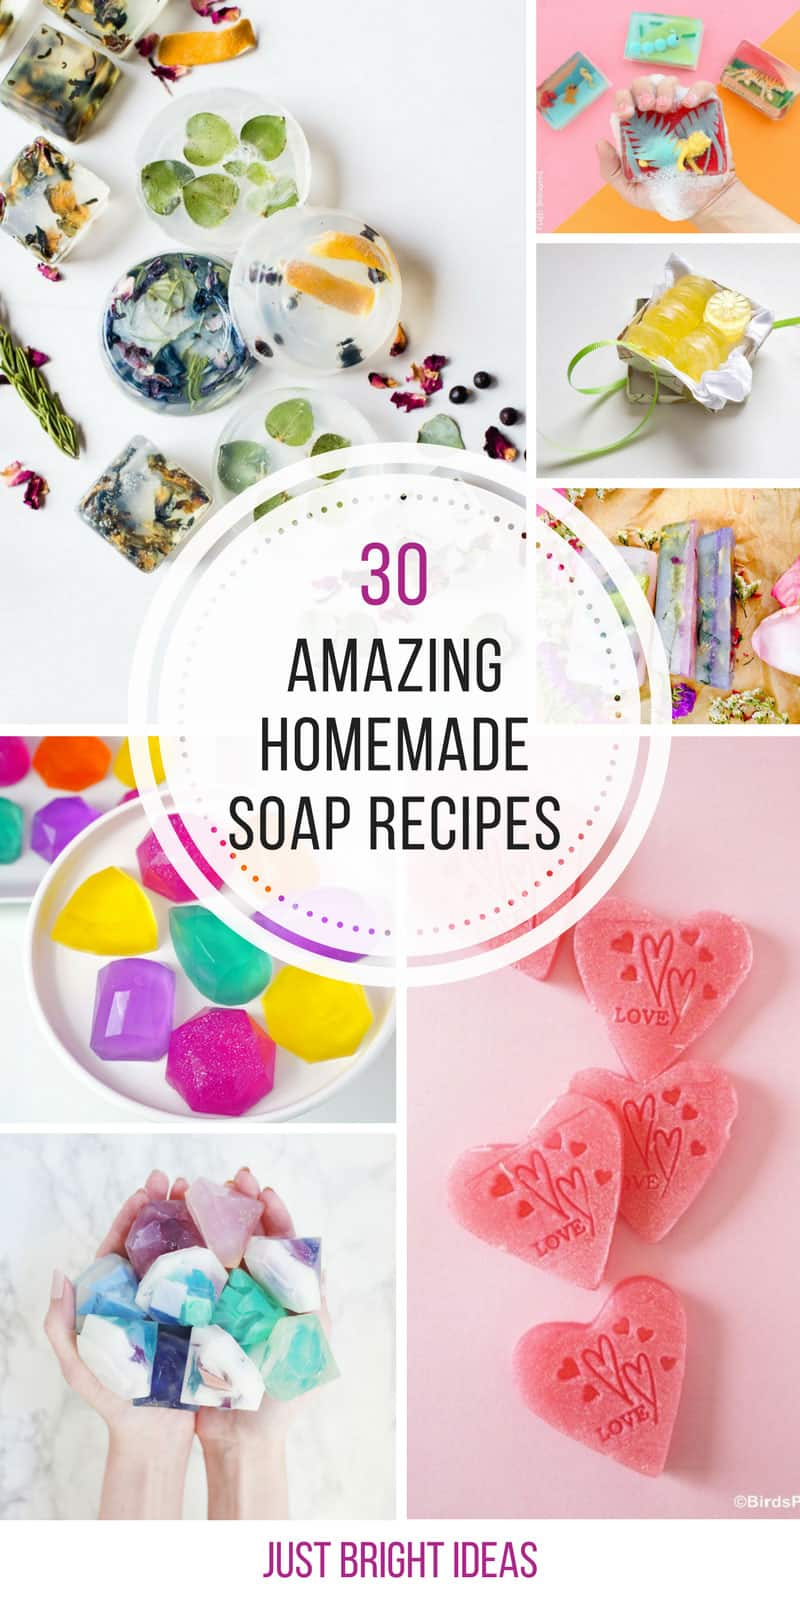 These homemade soap recipes are so easy to make! Thanks for sharing!